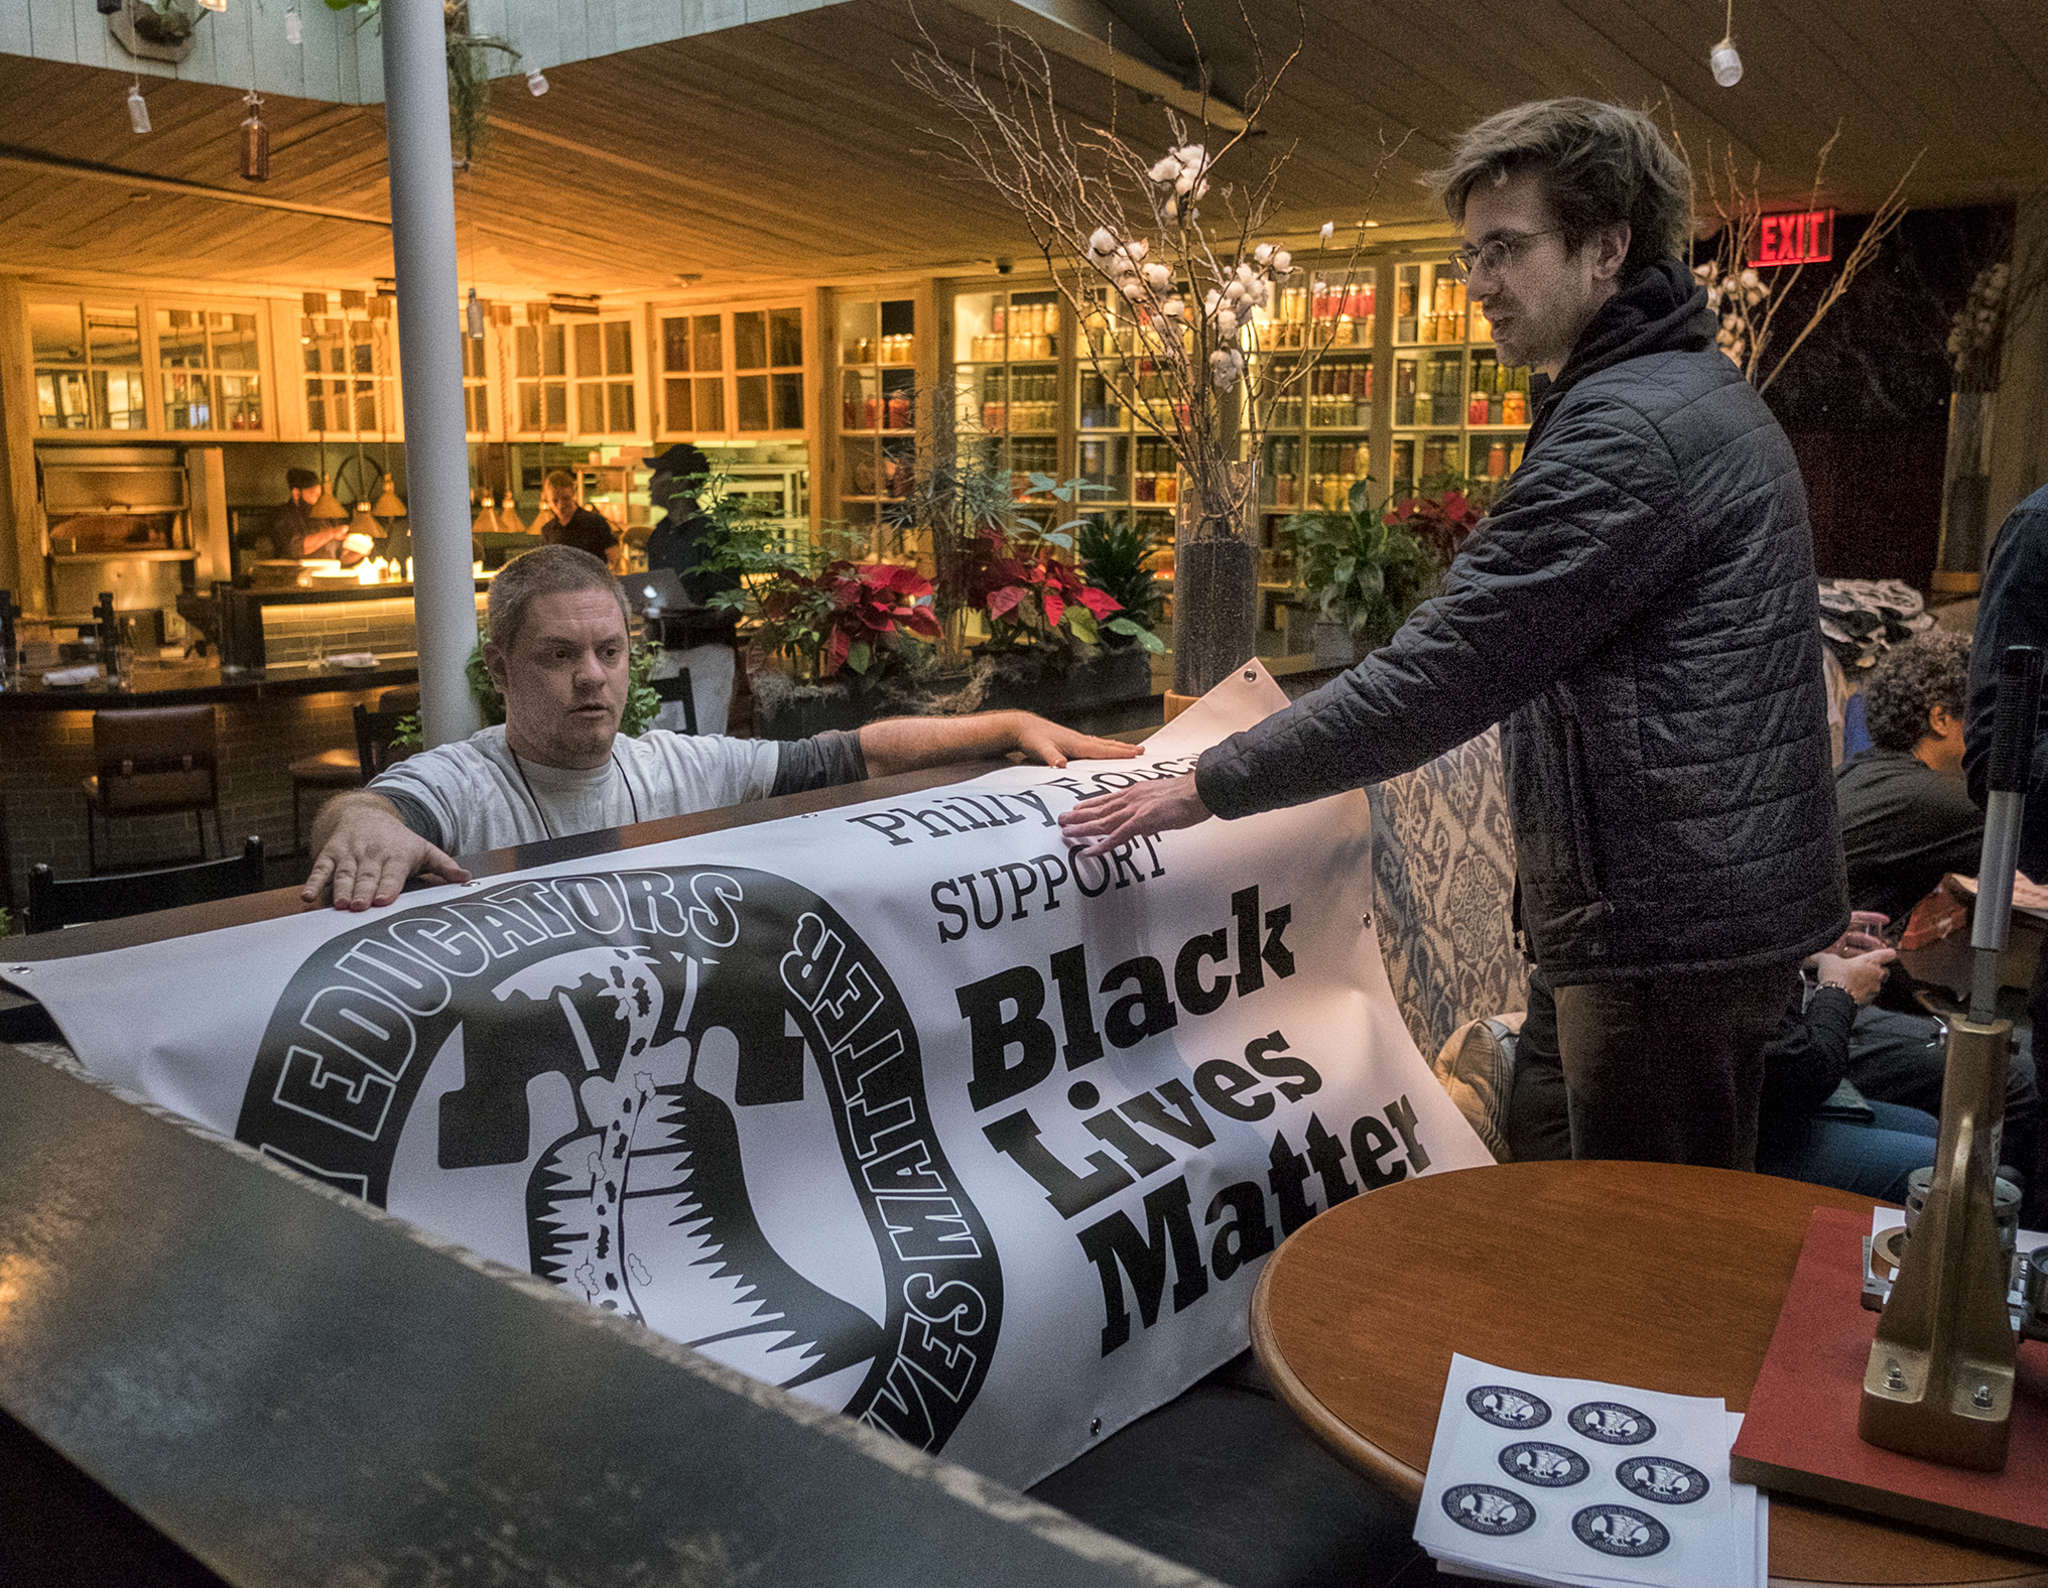 Members of the Caucus of Working Educators, an activist group of Philadelphia teachers, drape a Black Lives Matter banner at South restaurant, where they met to plan optional activities and curriculum for classes.